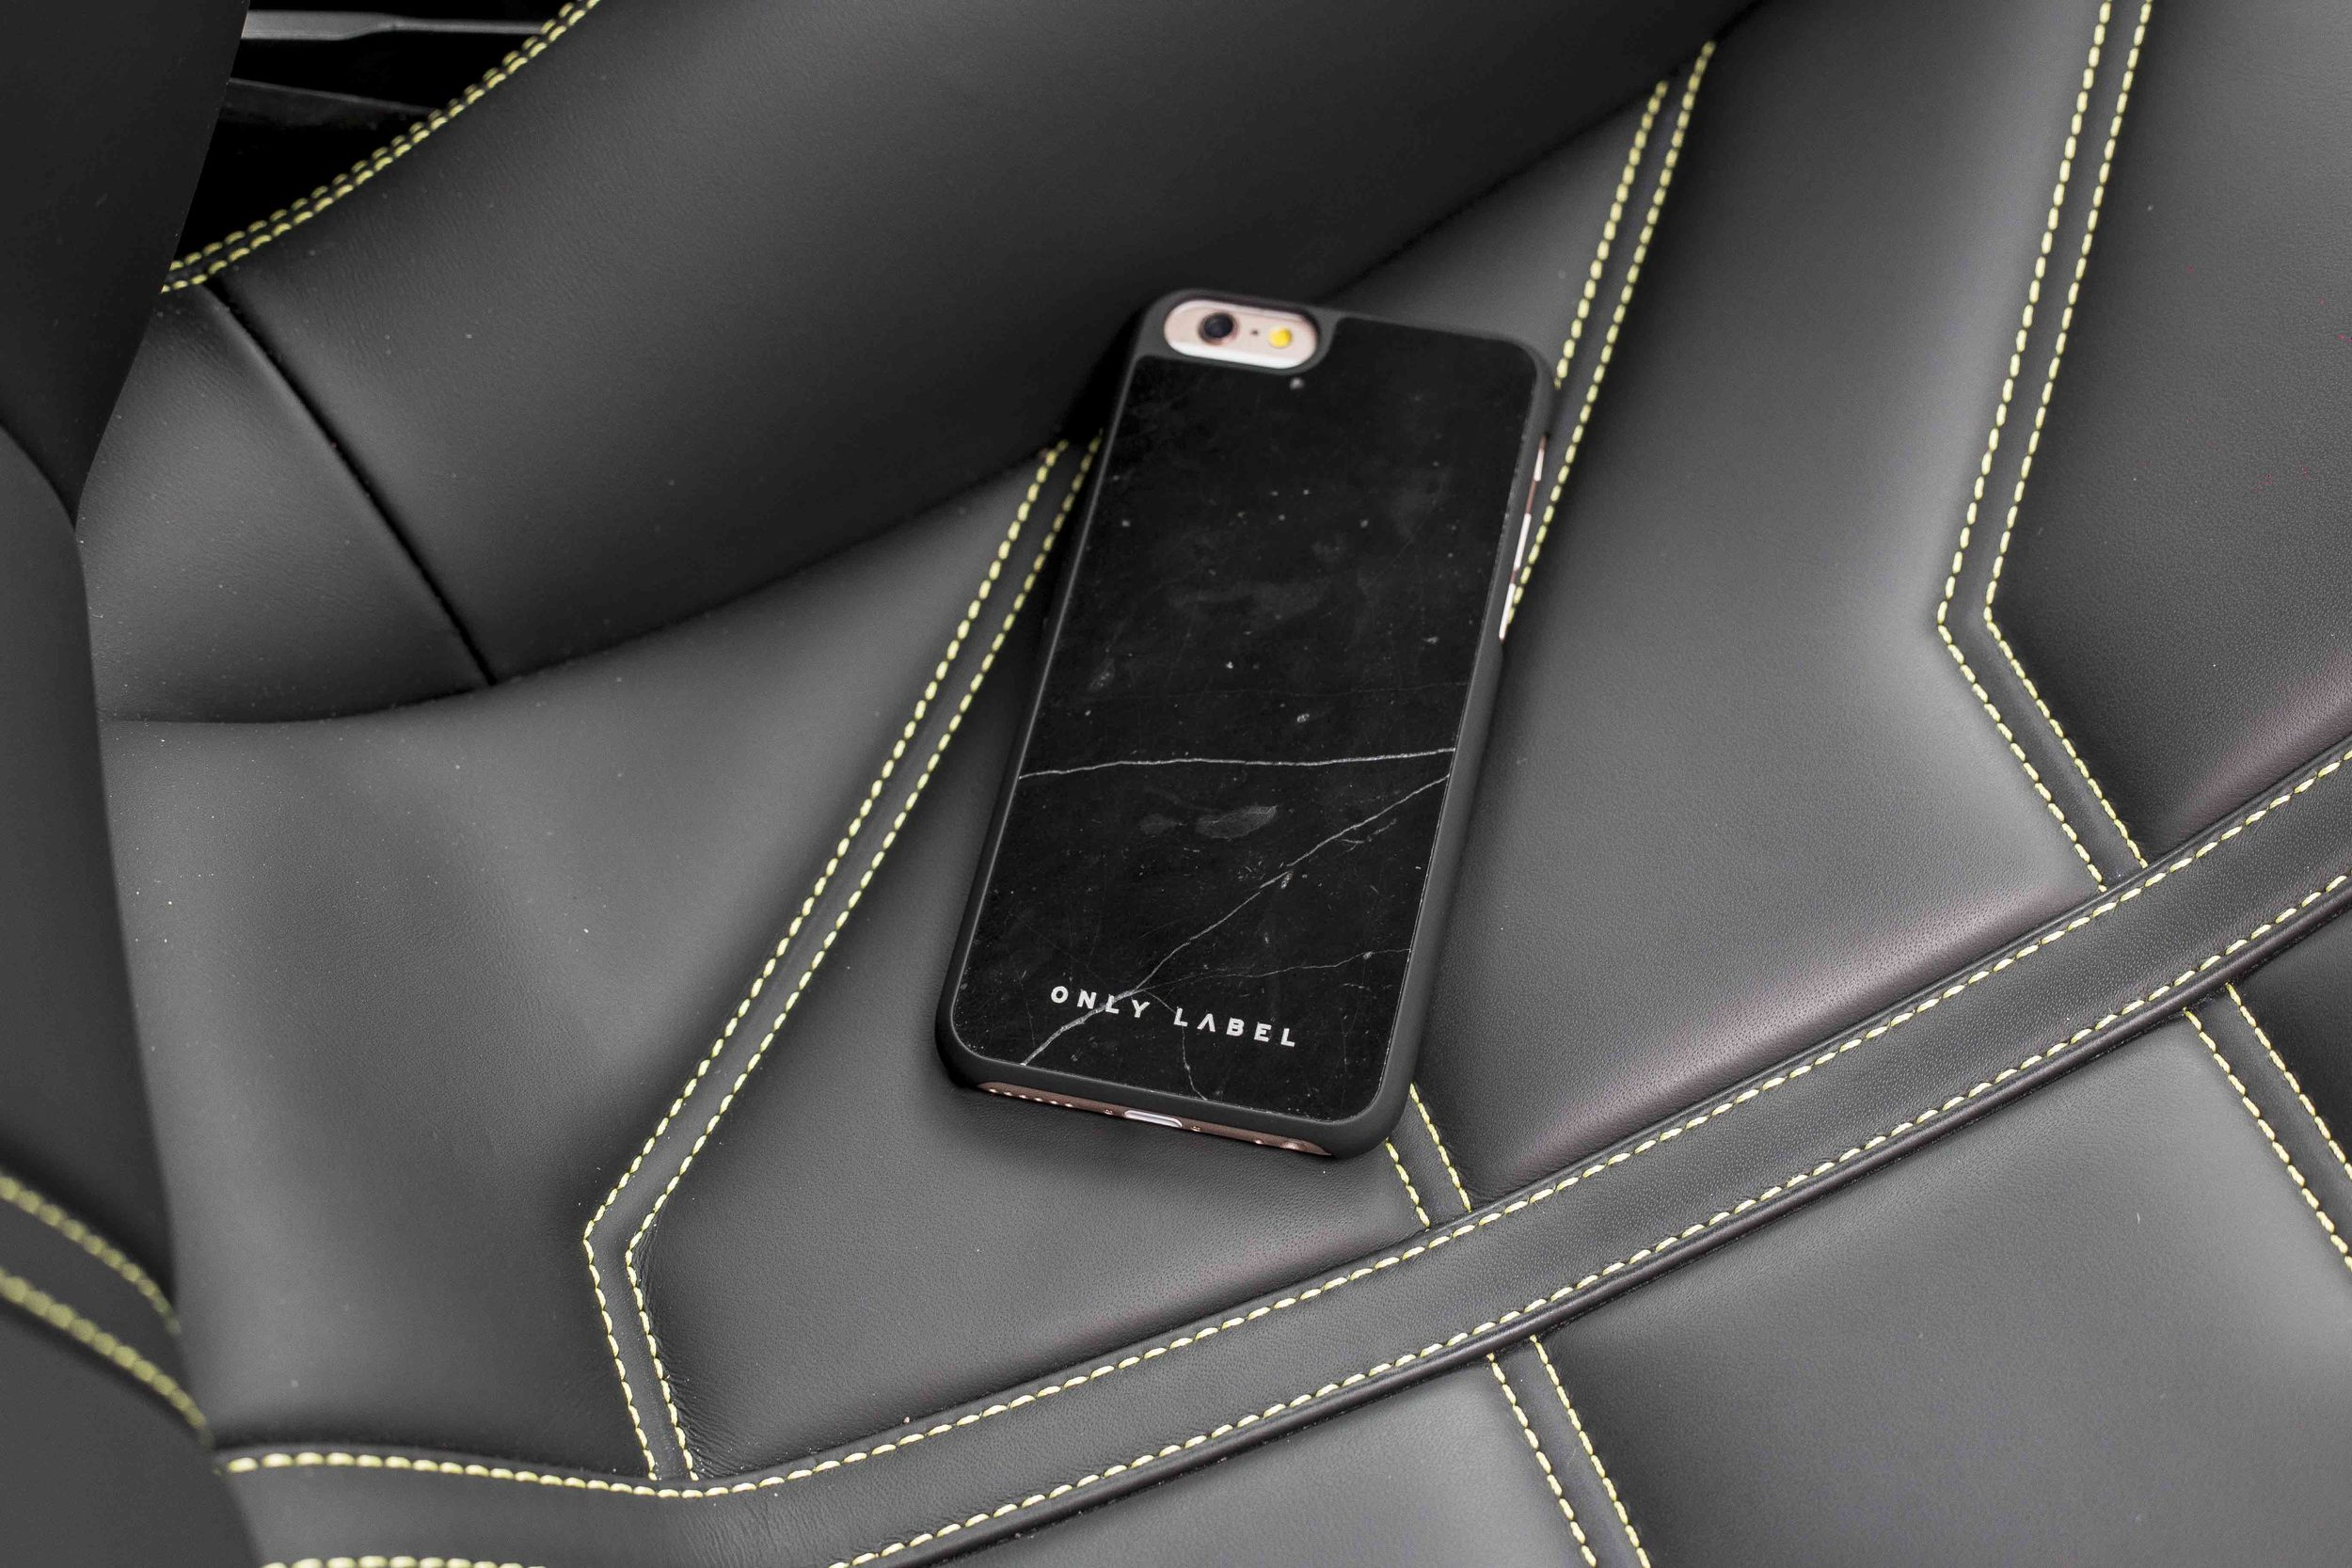 Only Label Marble Case-2060.jpg